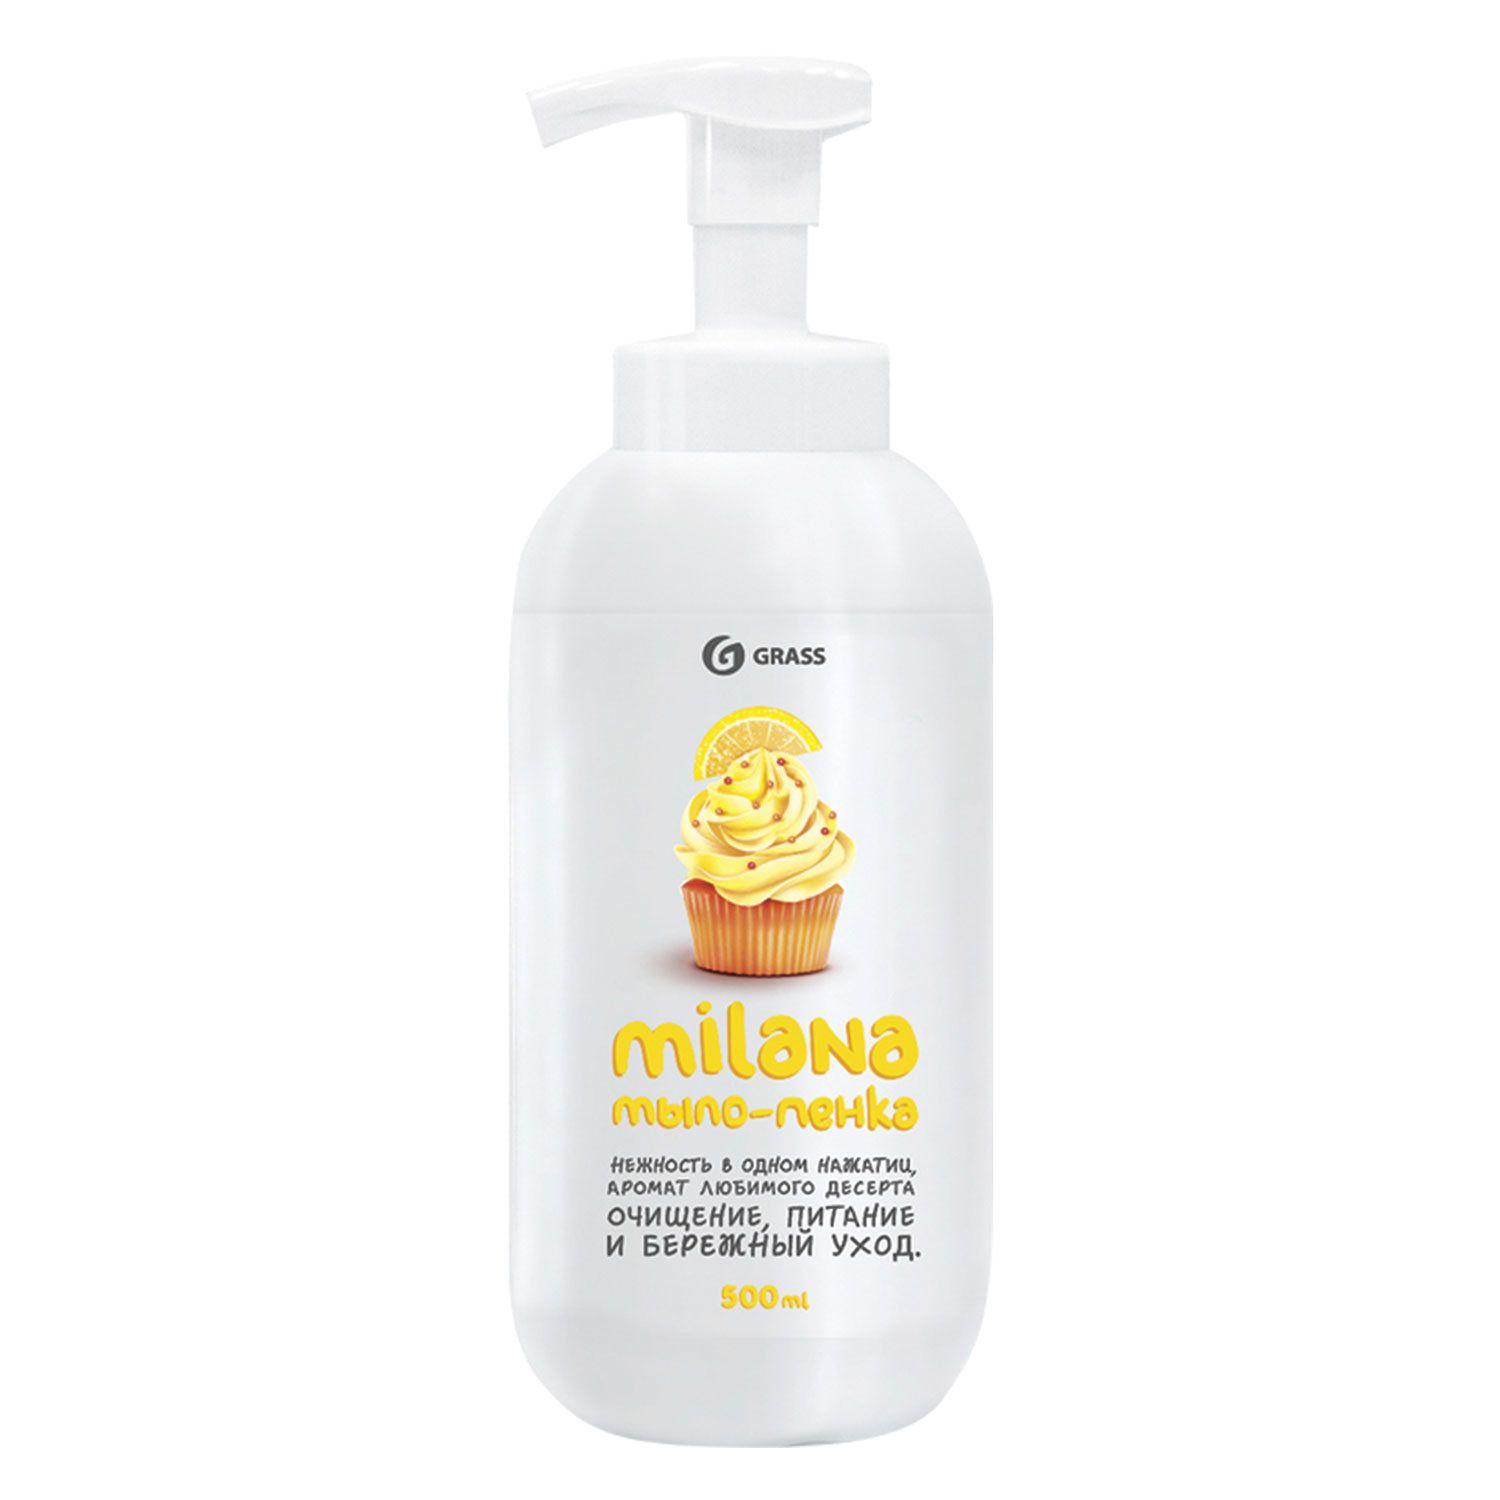 "Soap-foam liquid 500 ml GRASS MILANA ""Lemon pie"", dispenser"